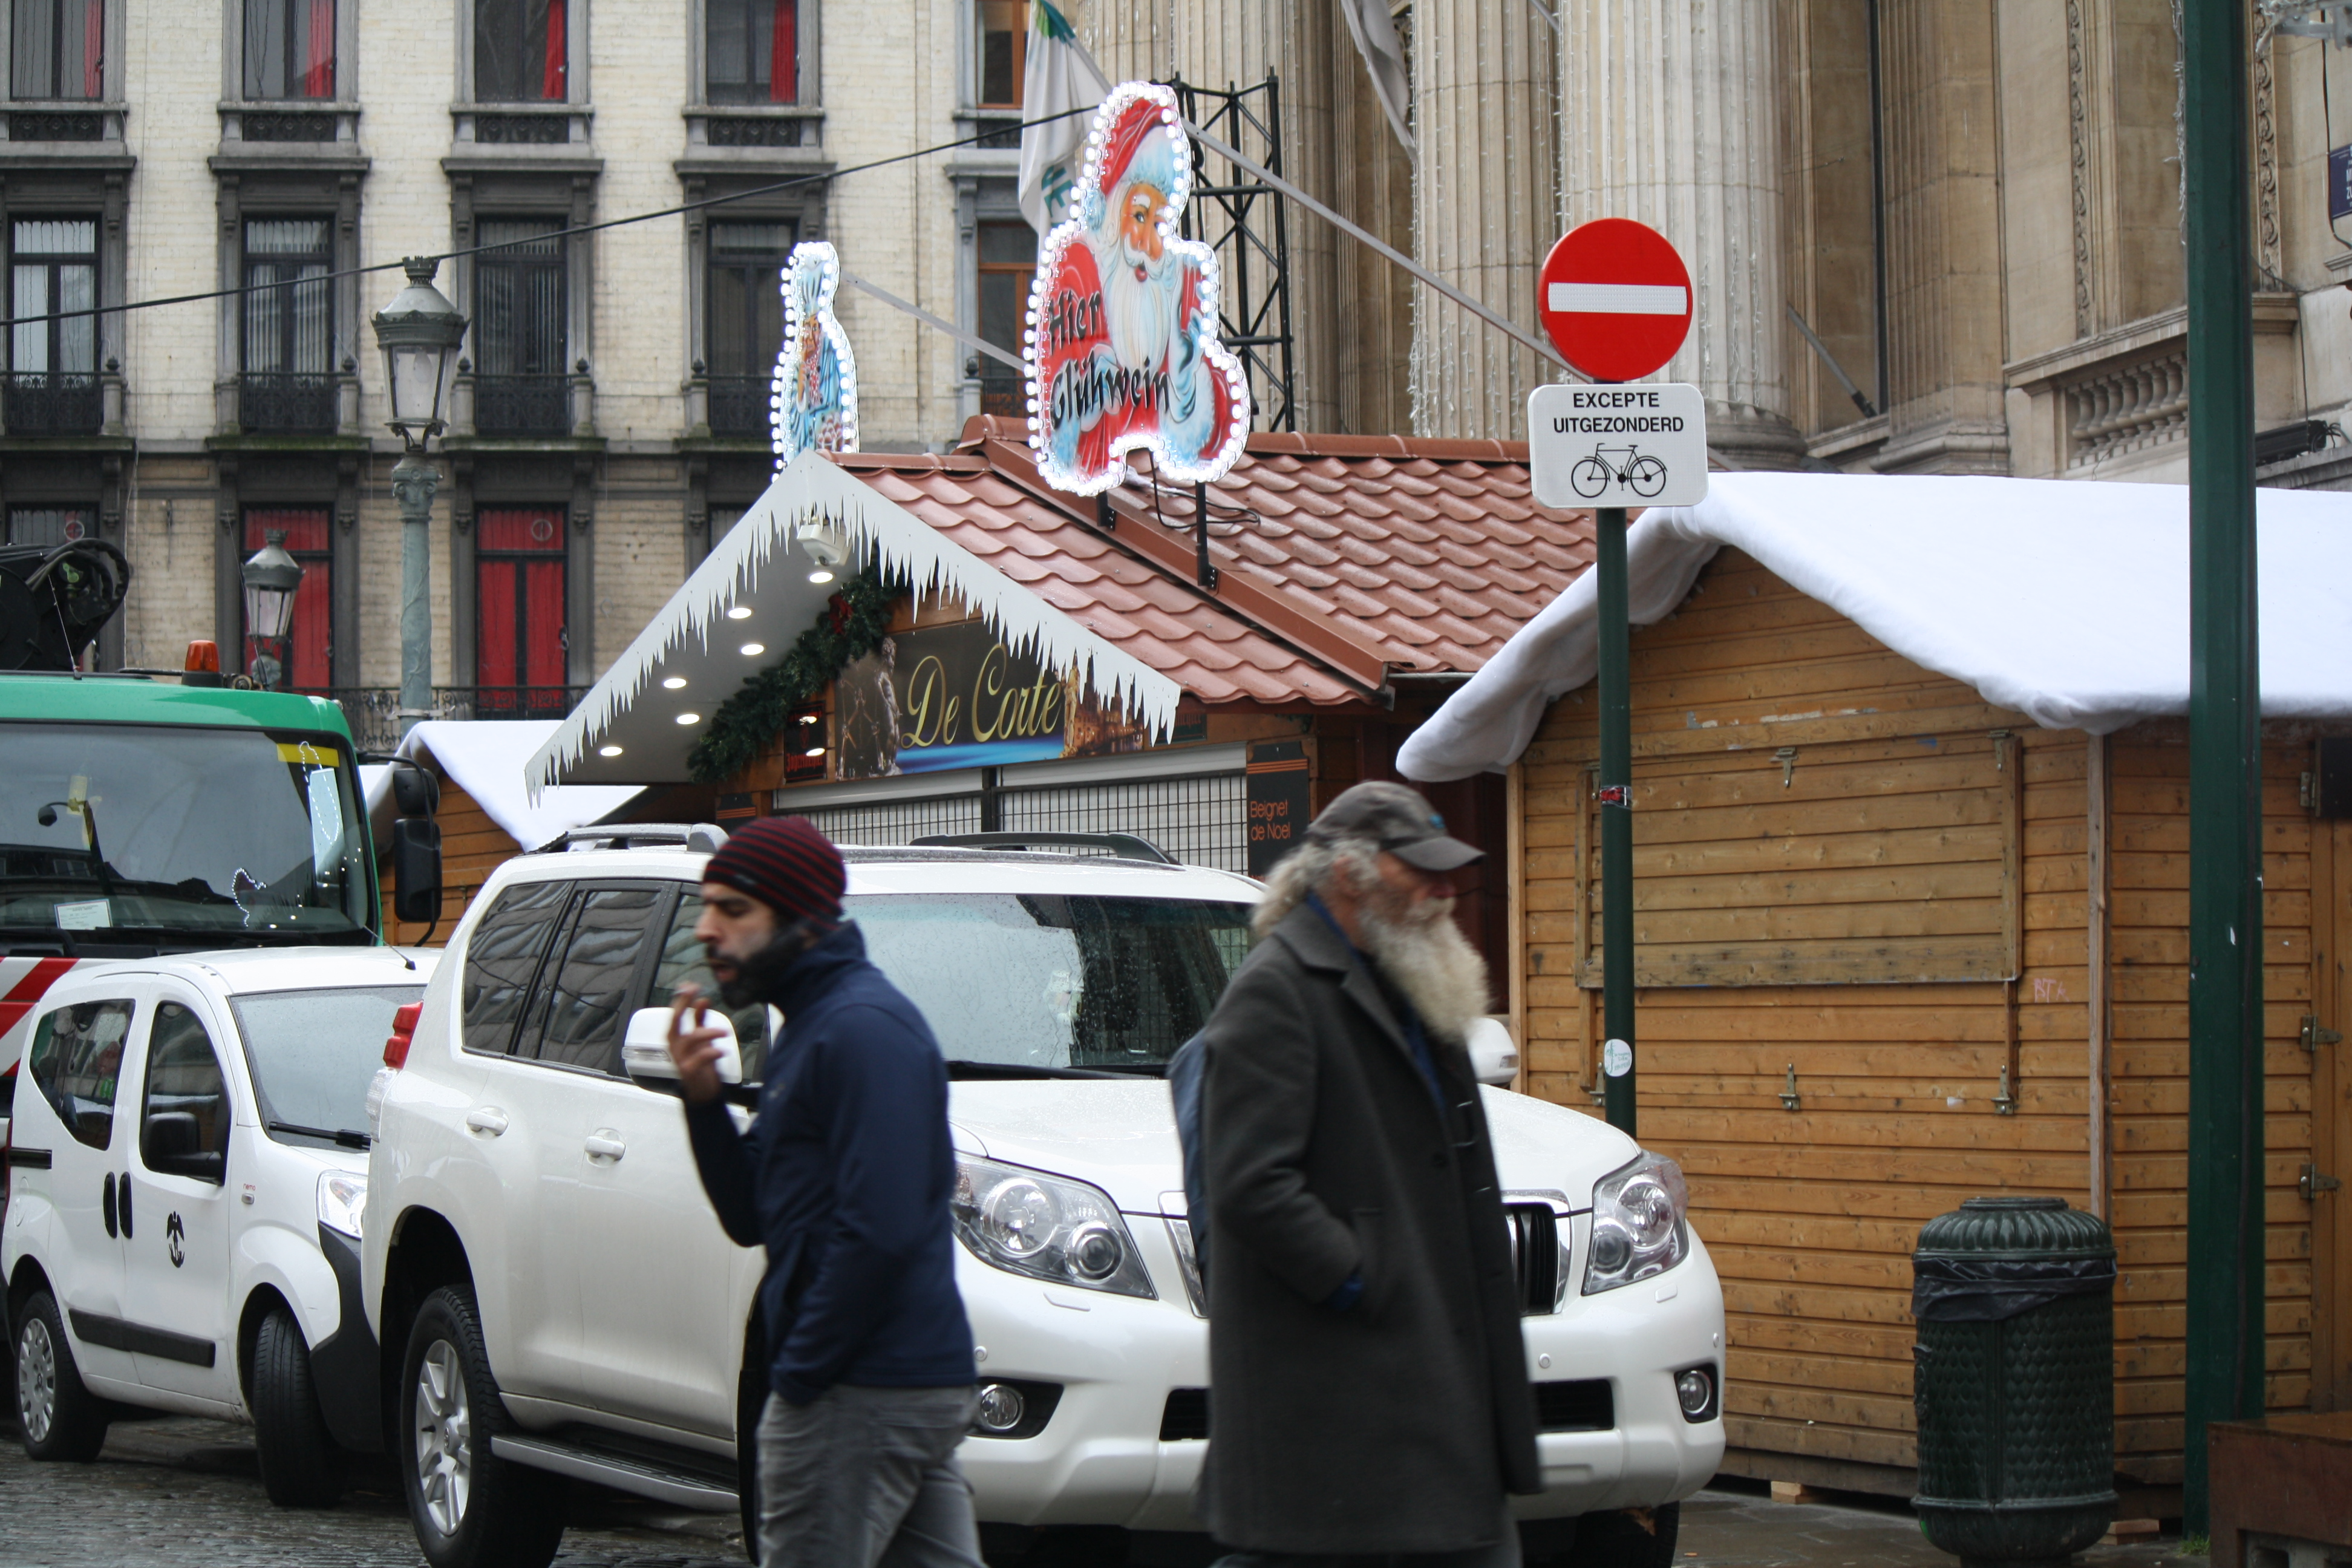 Despite remaining at the highest security alert levels, Brussels prepares for its annual Christmas markets, Nov. 24, 2015.